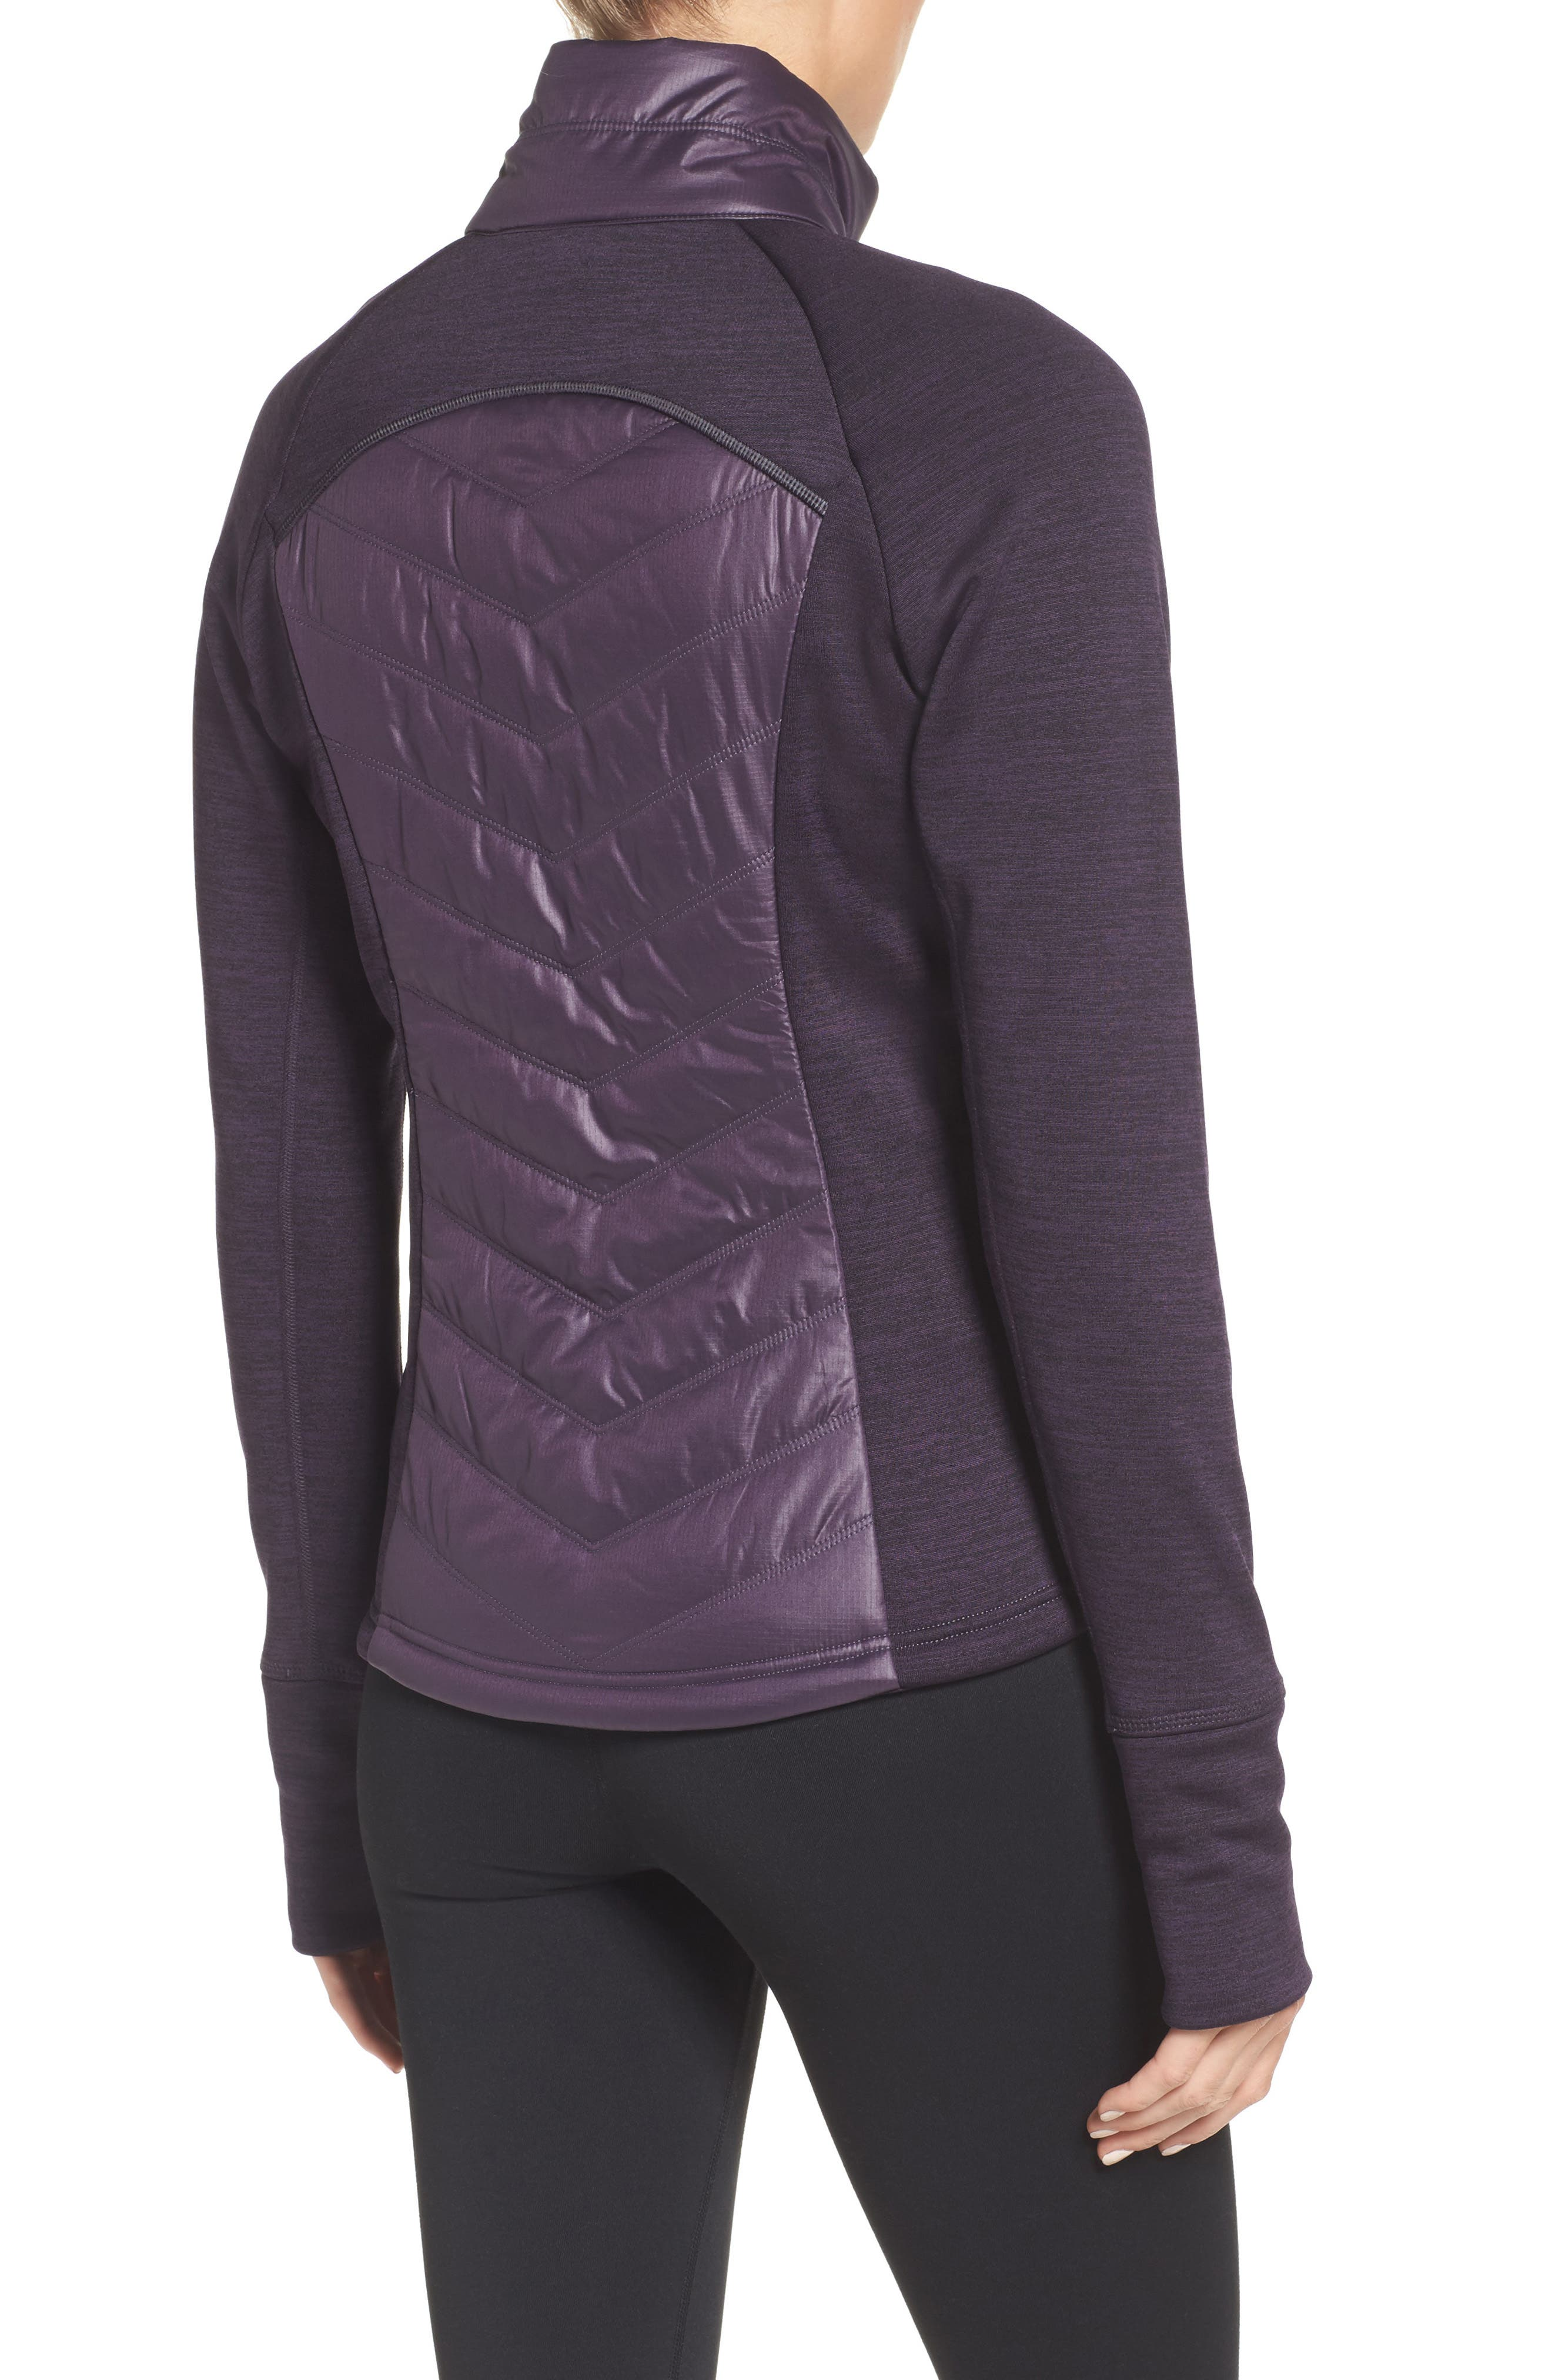 Zelfusion Reflective Quilted Jacket,                             Alternate thumbnail 14, color,